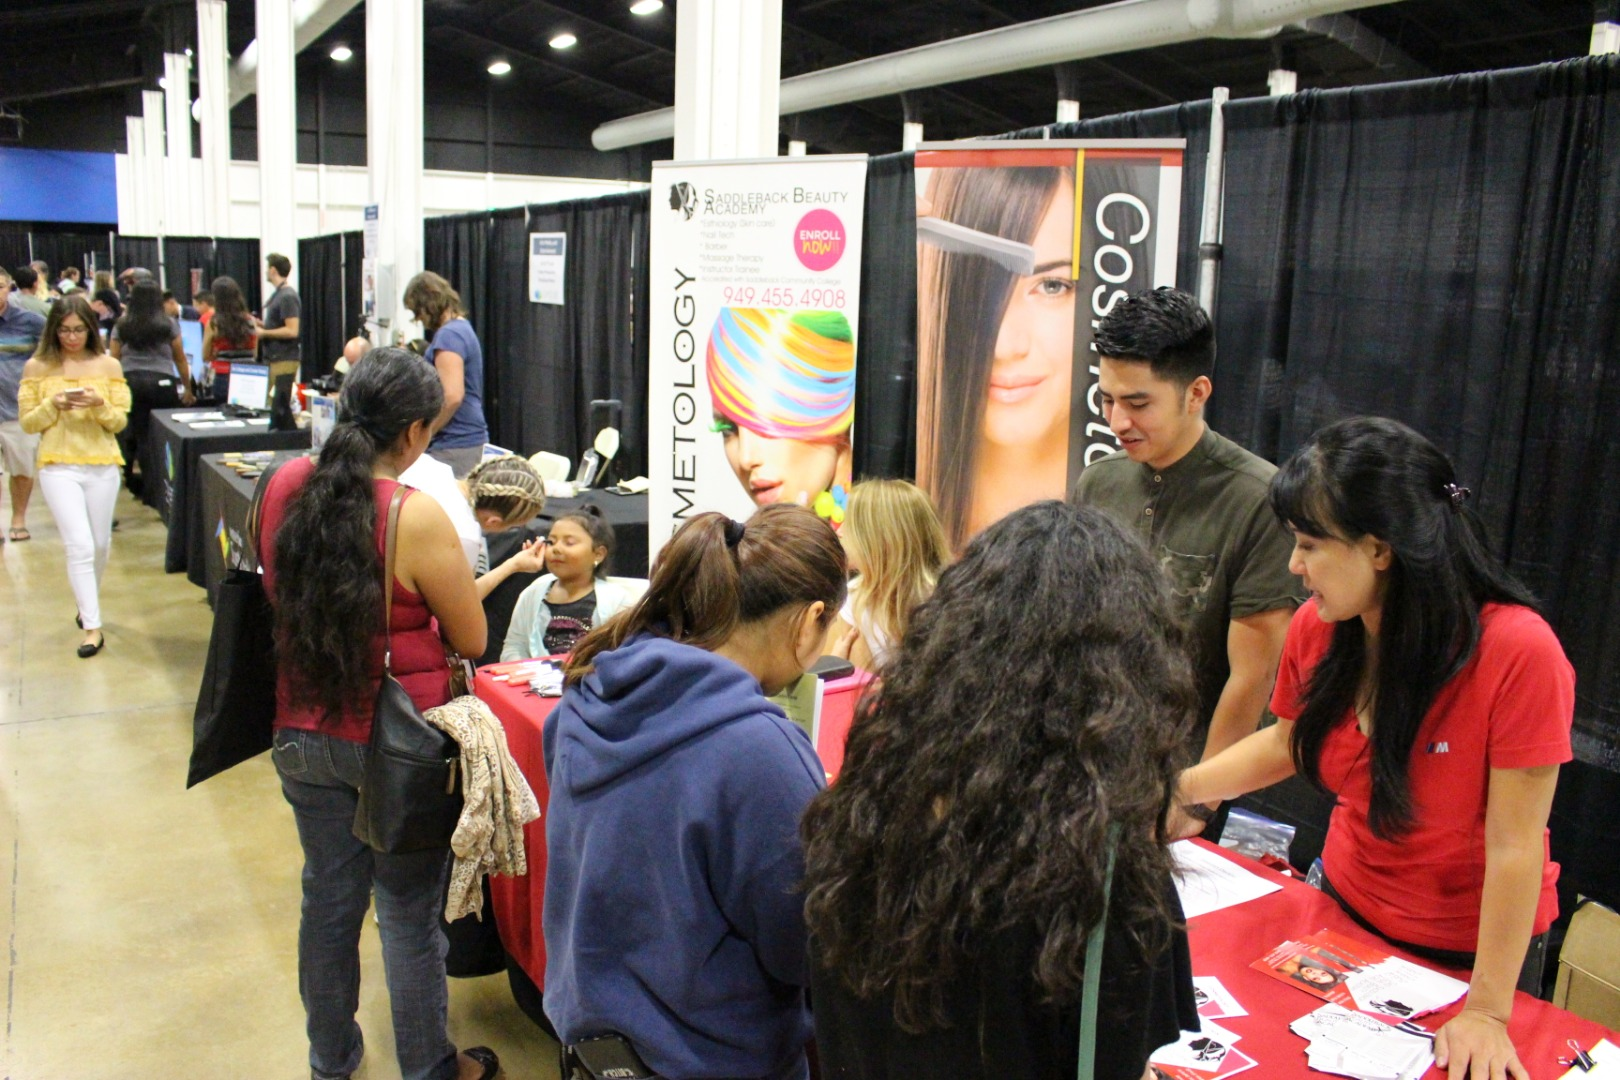 people engaged at a booth